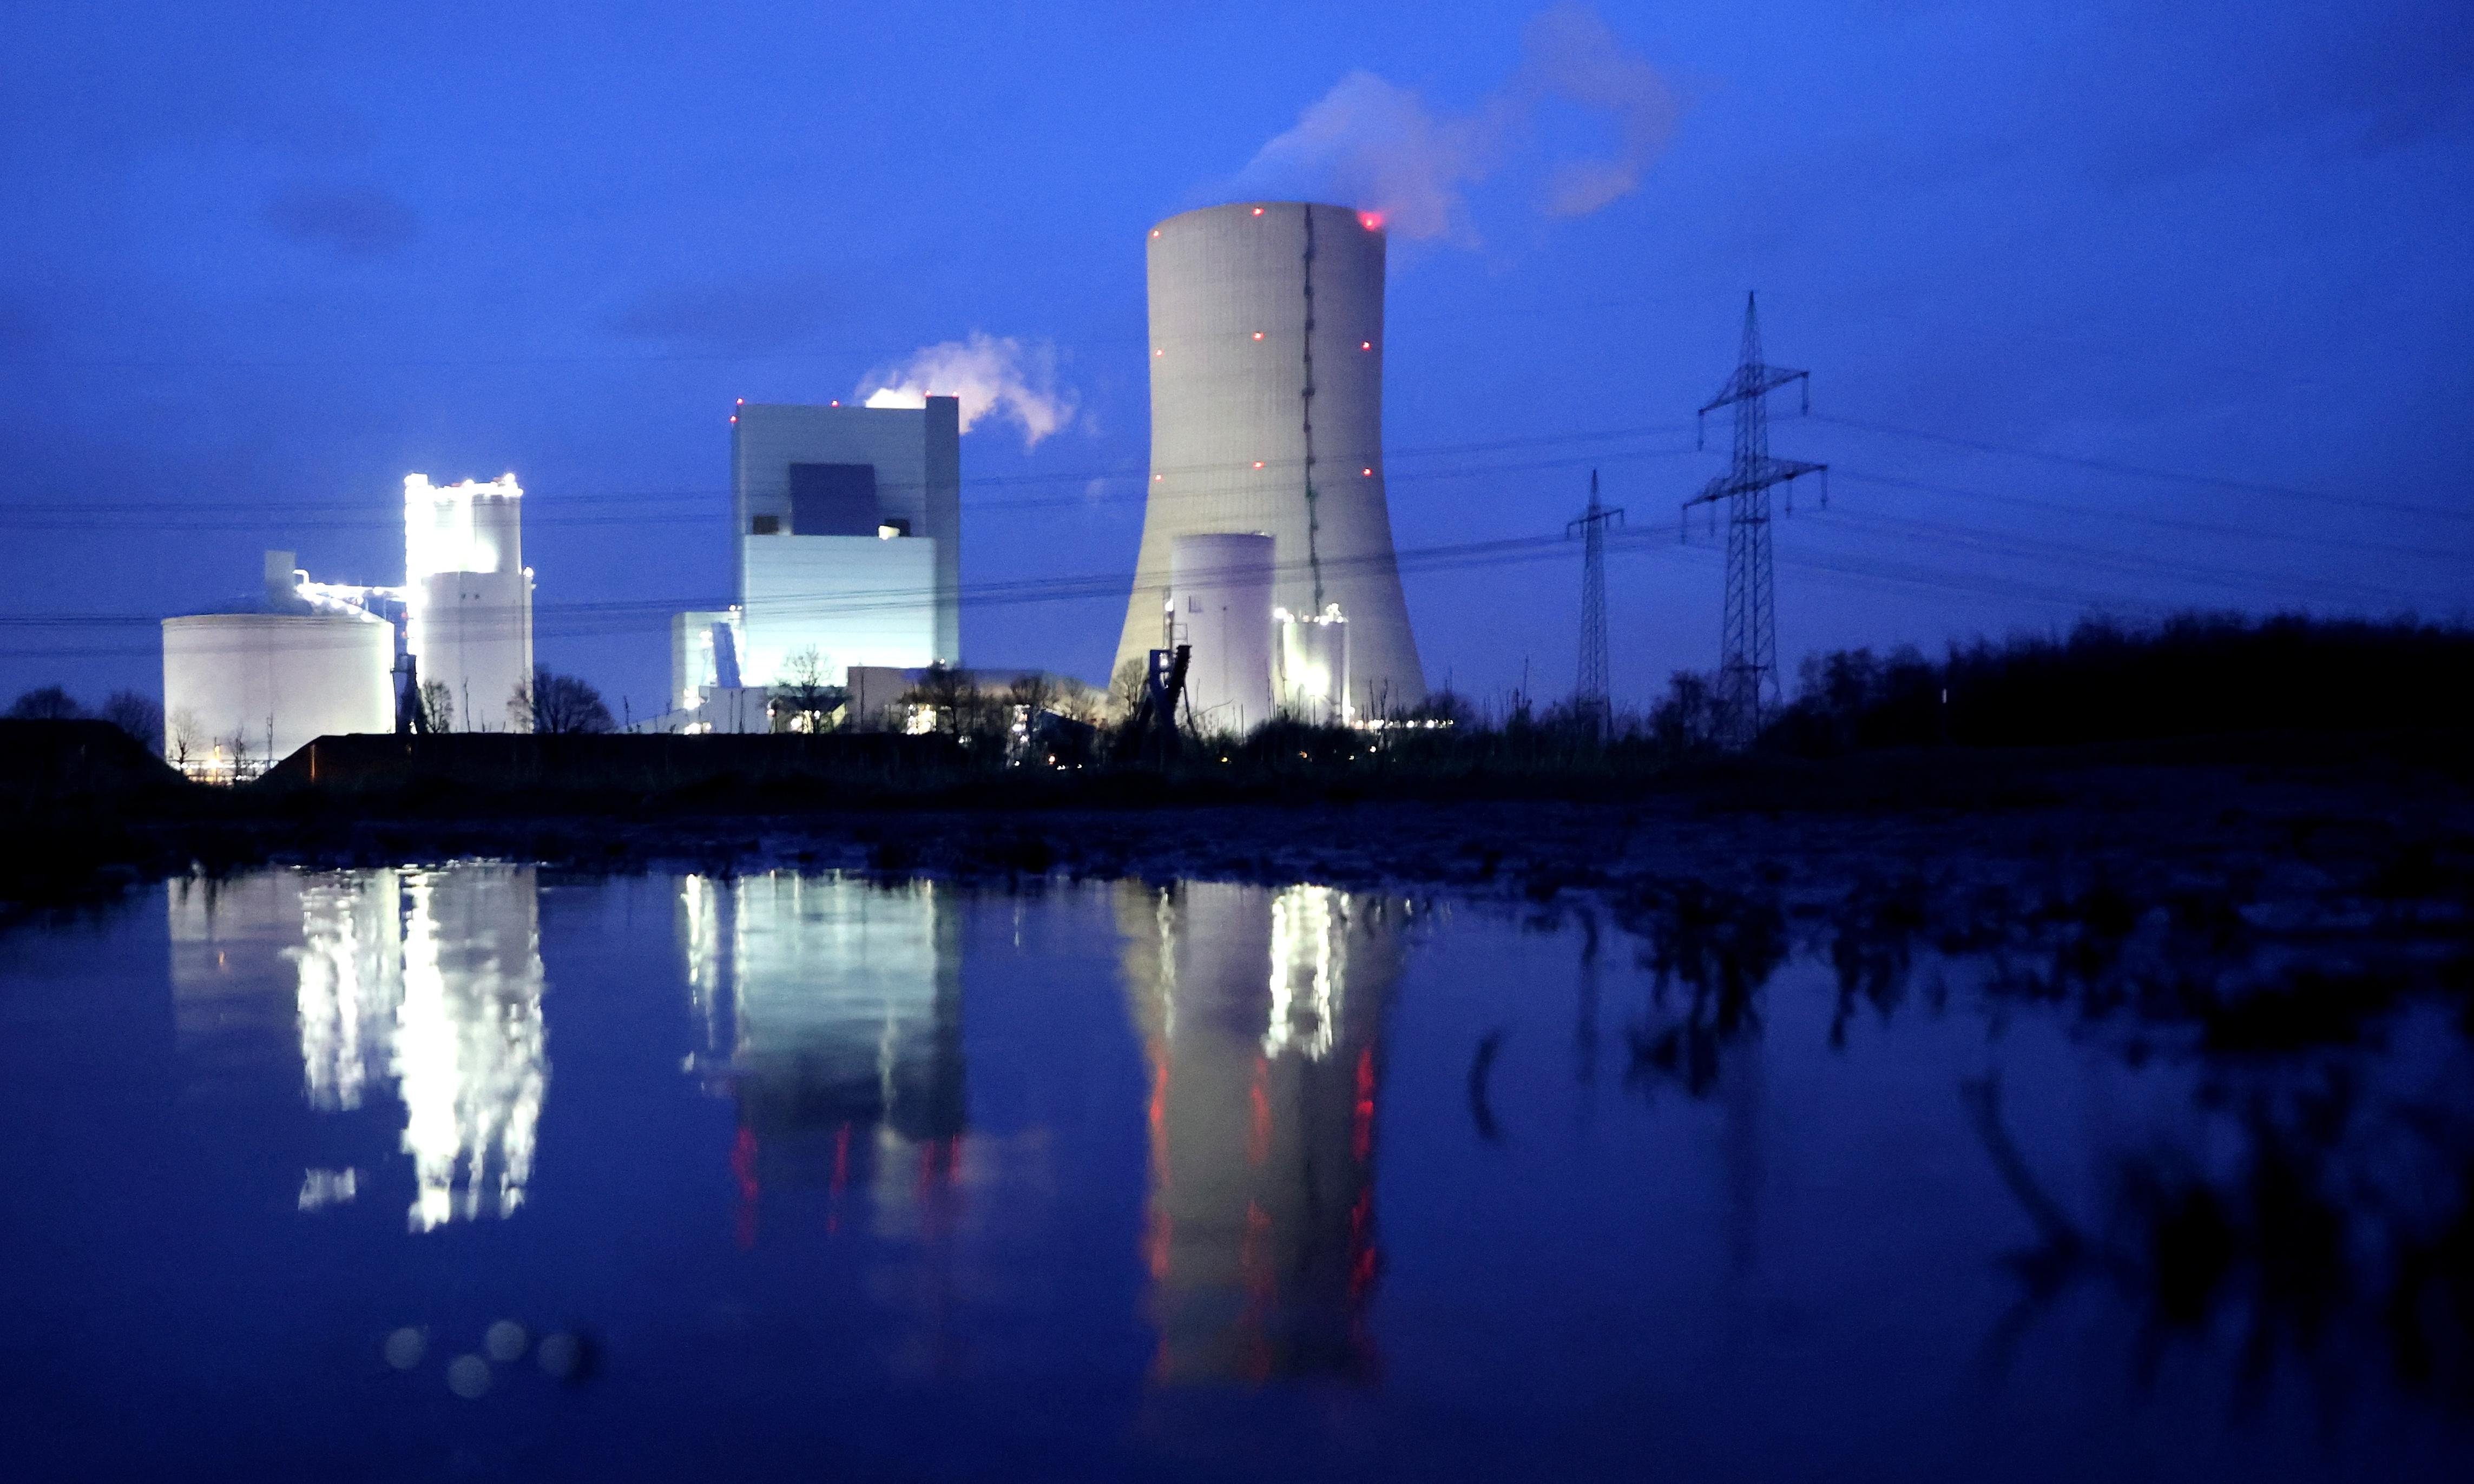 Germany will pay billions to speed up coal-fired power plant shutdowns